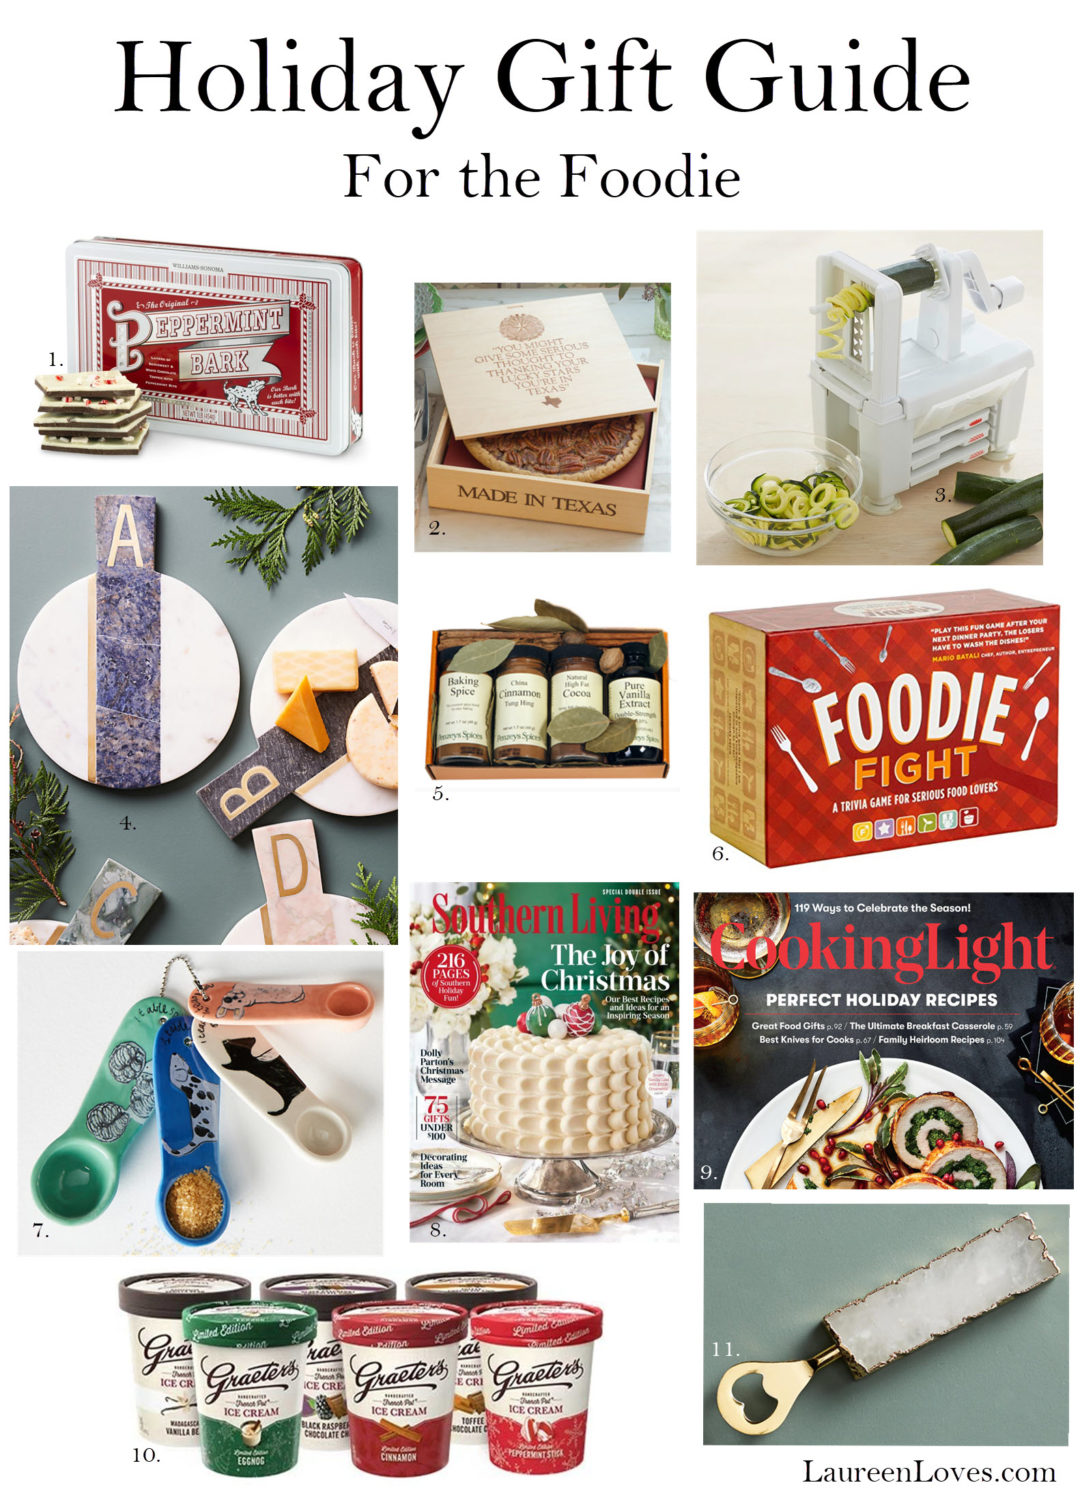 foodie gift picks, gifts for food lovers